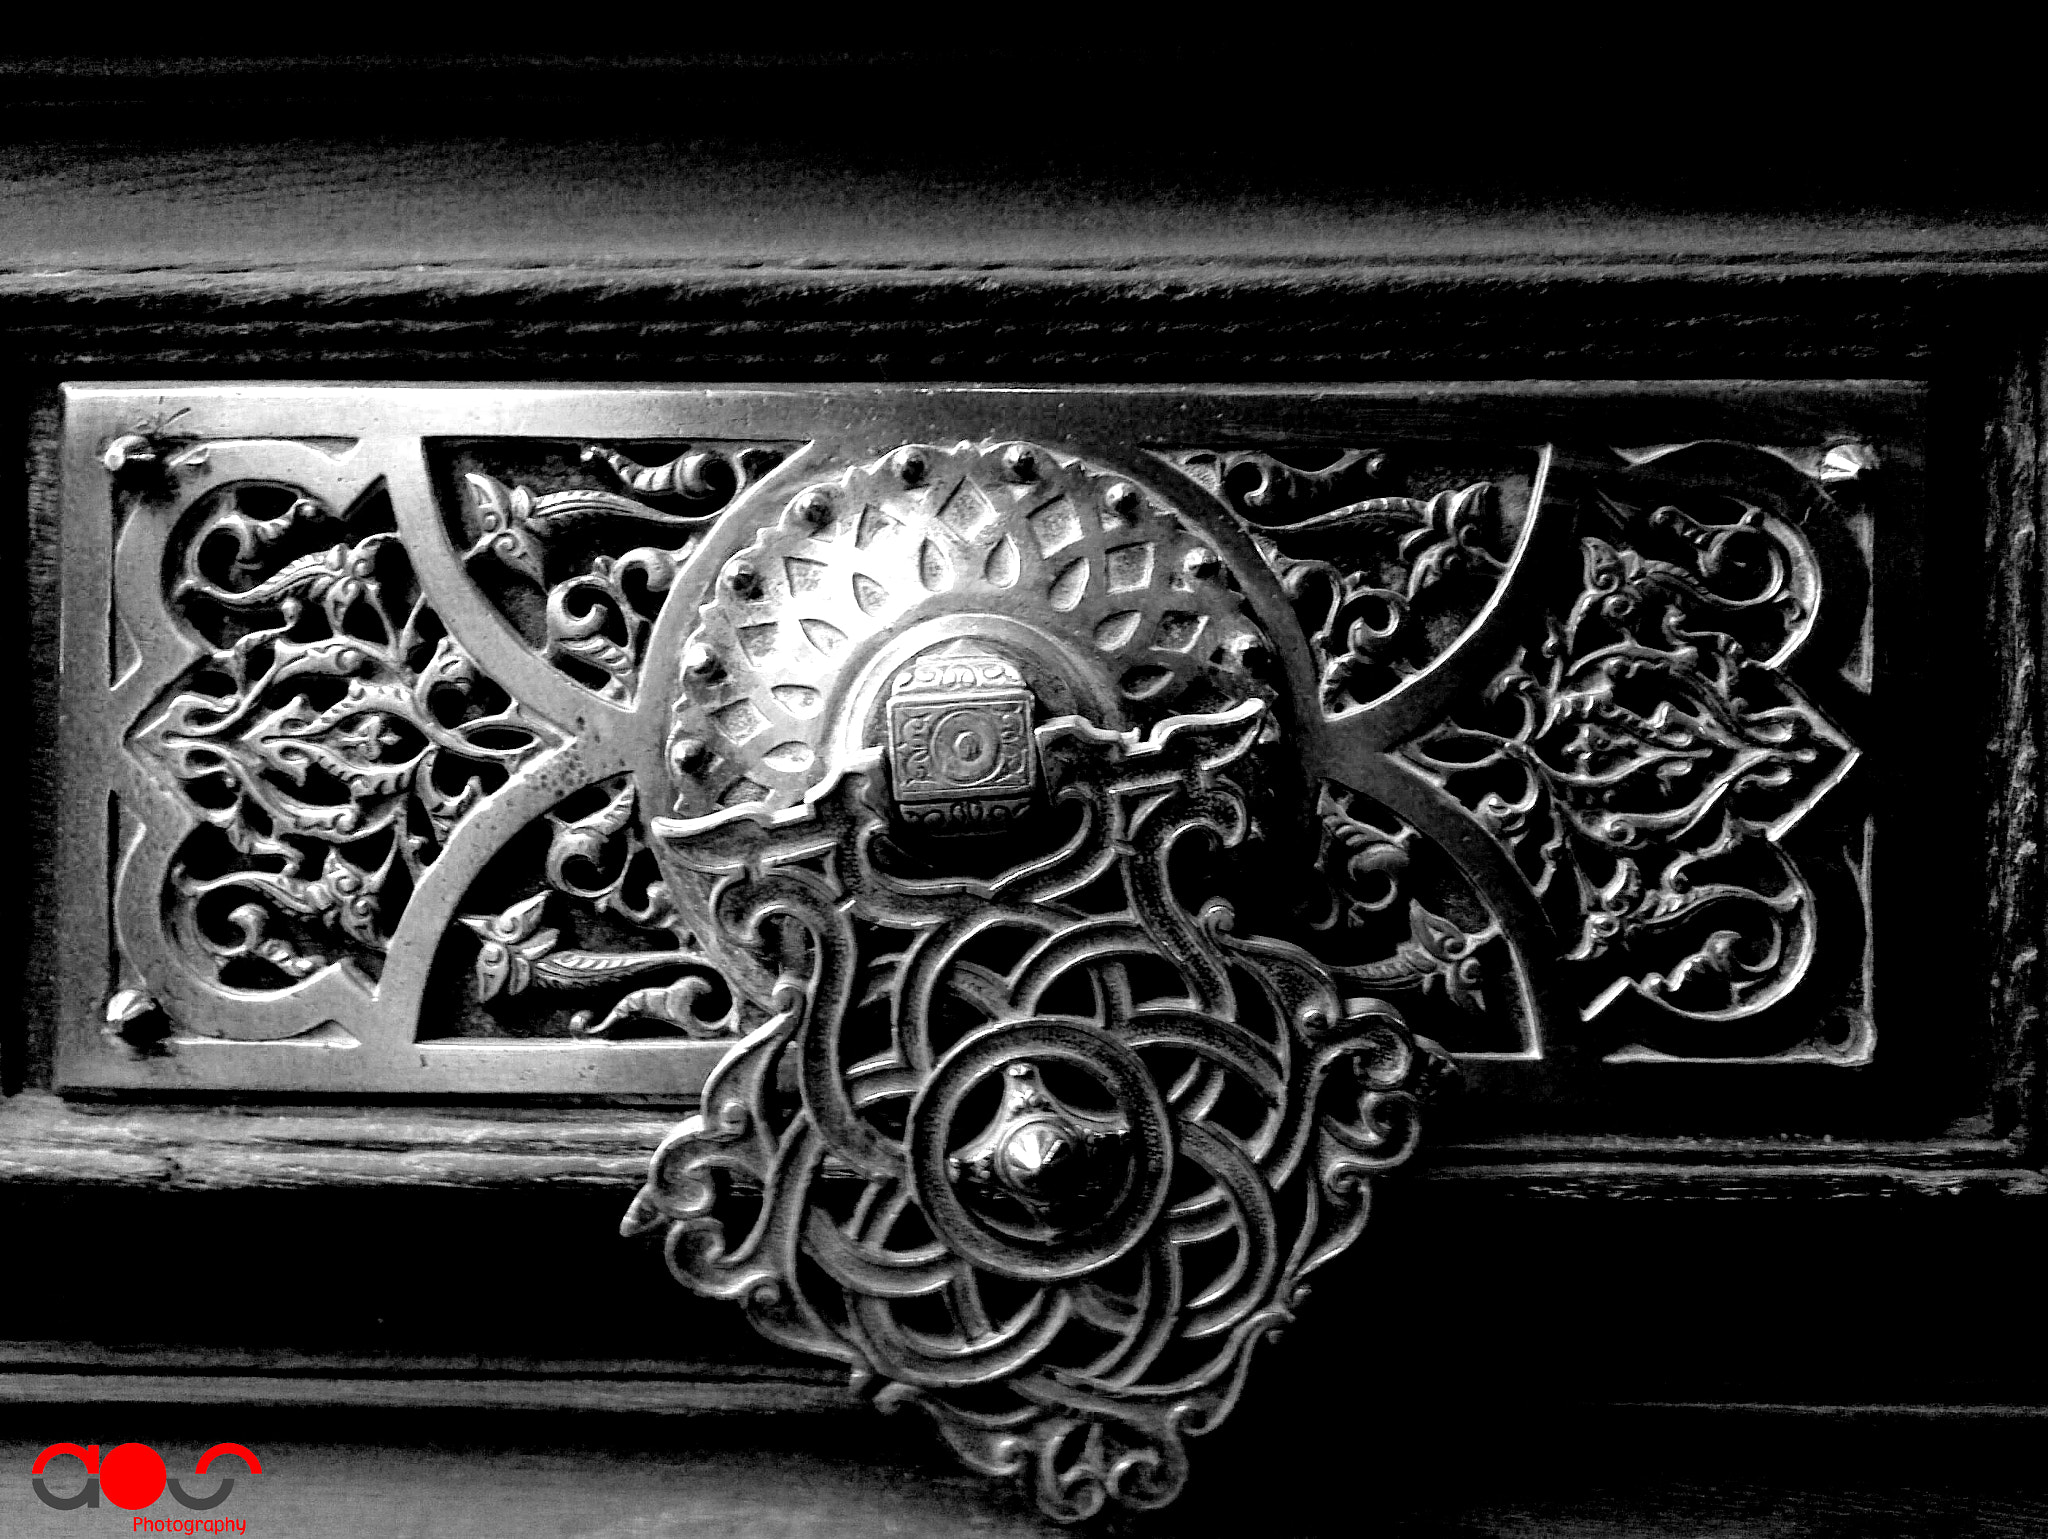 Photograph Door by Mohamed Aos on 500px